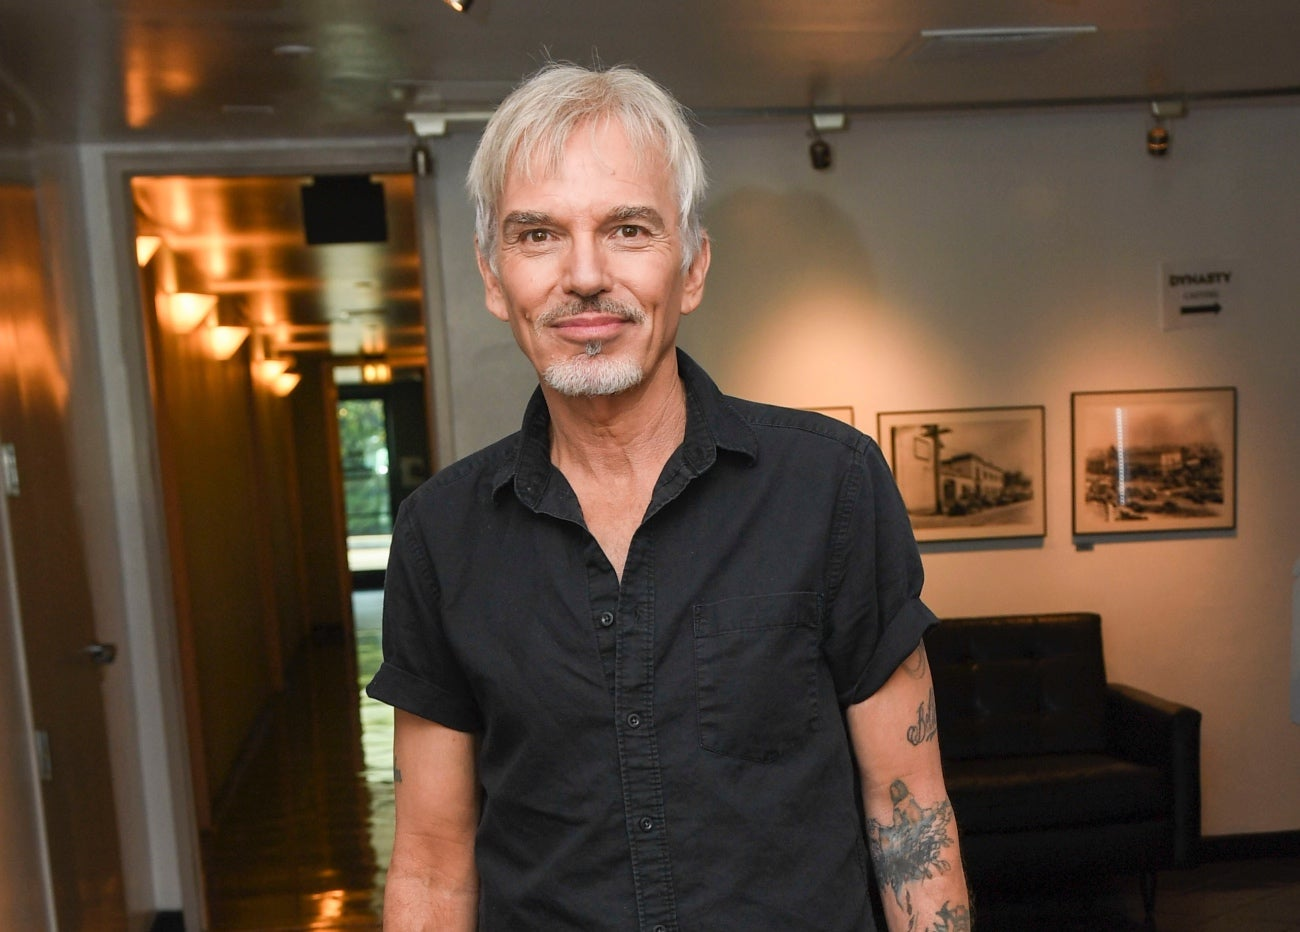 Hfpa In Conversation Billy Bob Thornton On Film Music And